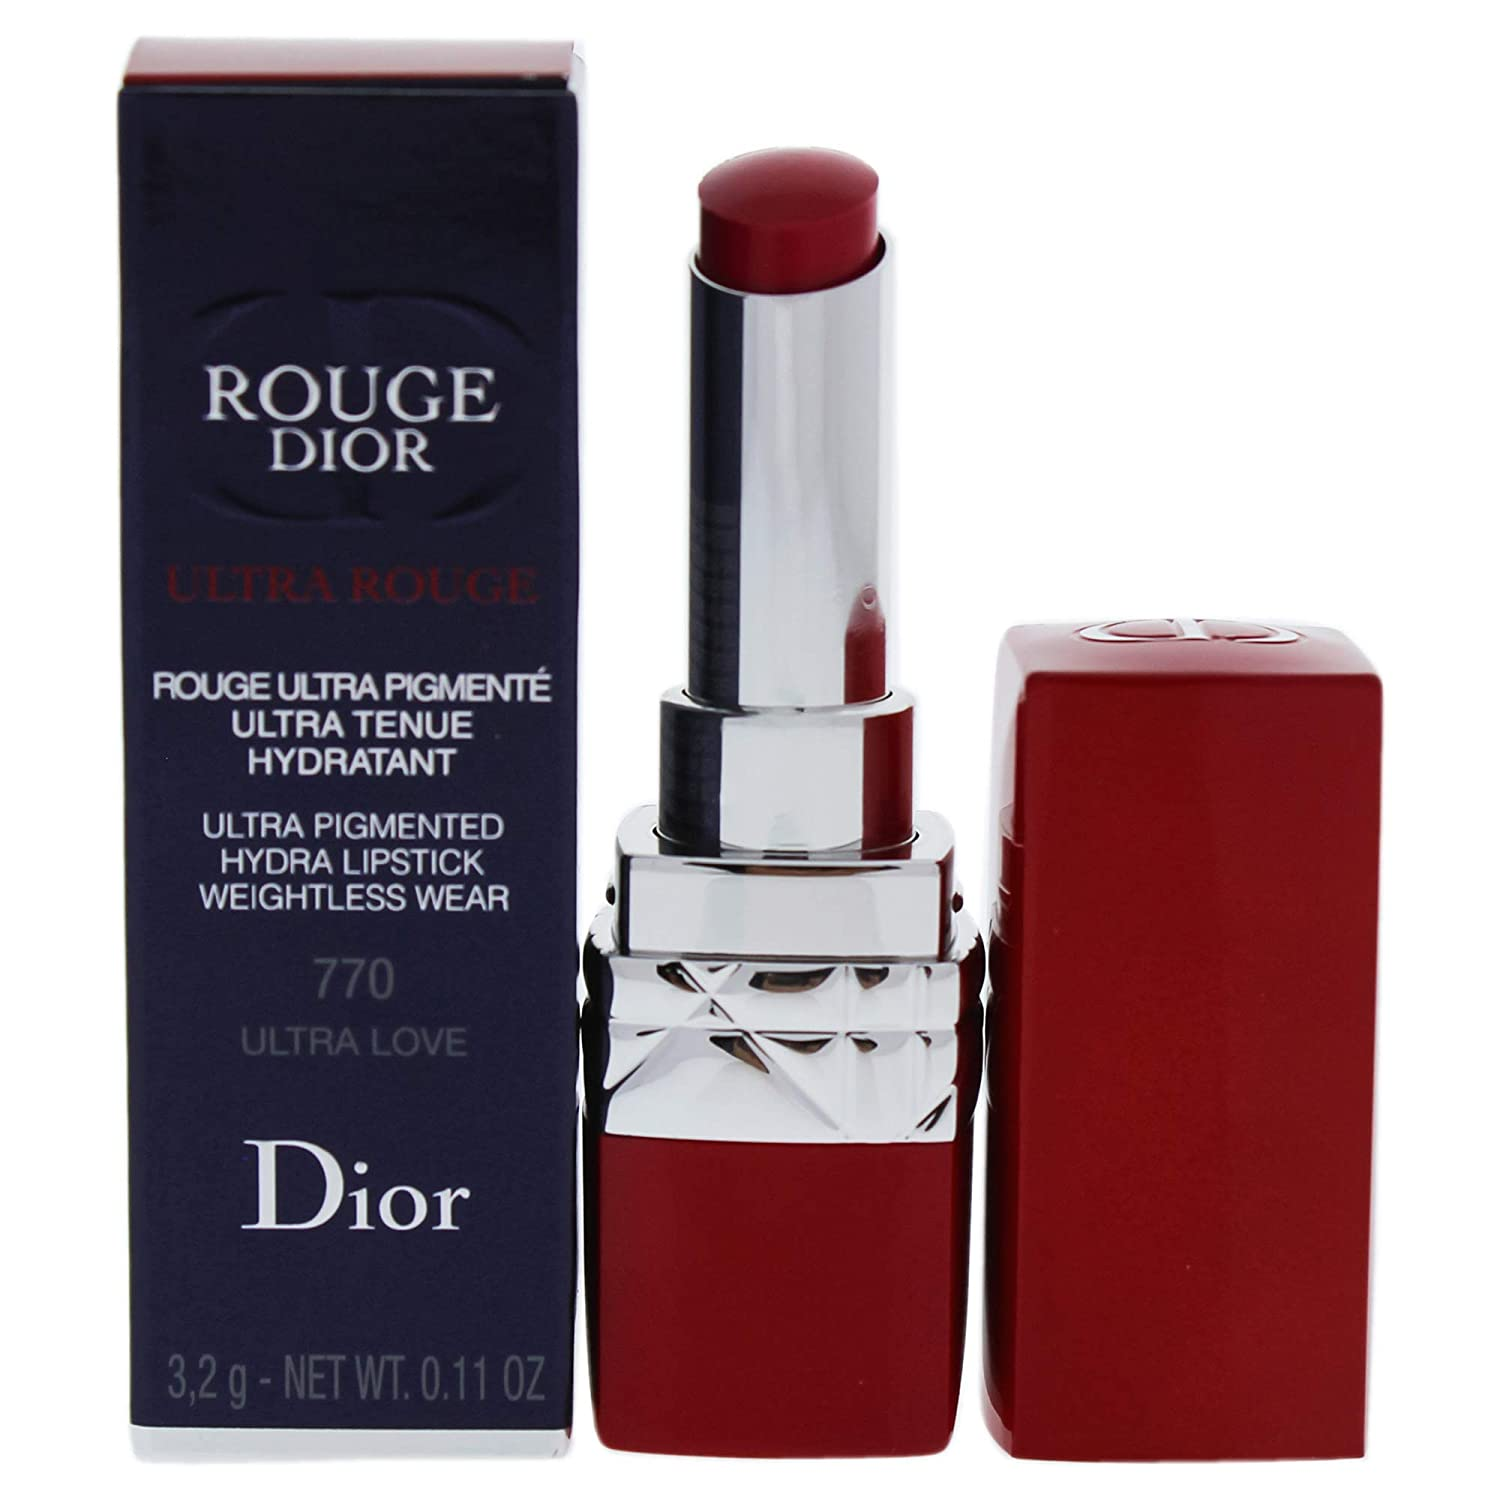 Dior Rouge Ultra Lipstick Love - 770 Free shipping anywhere in the nation Max 83% OFF